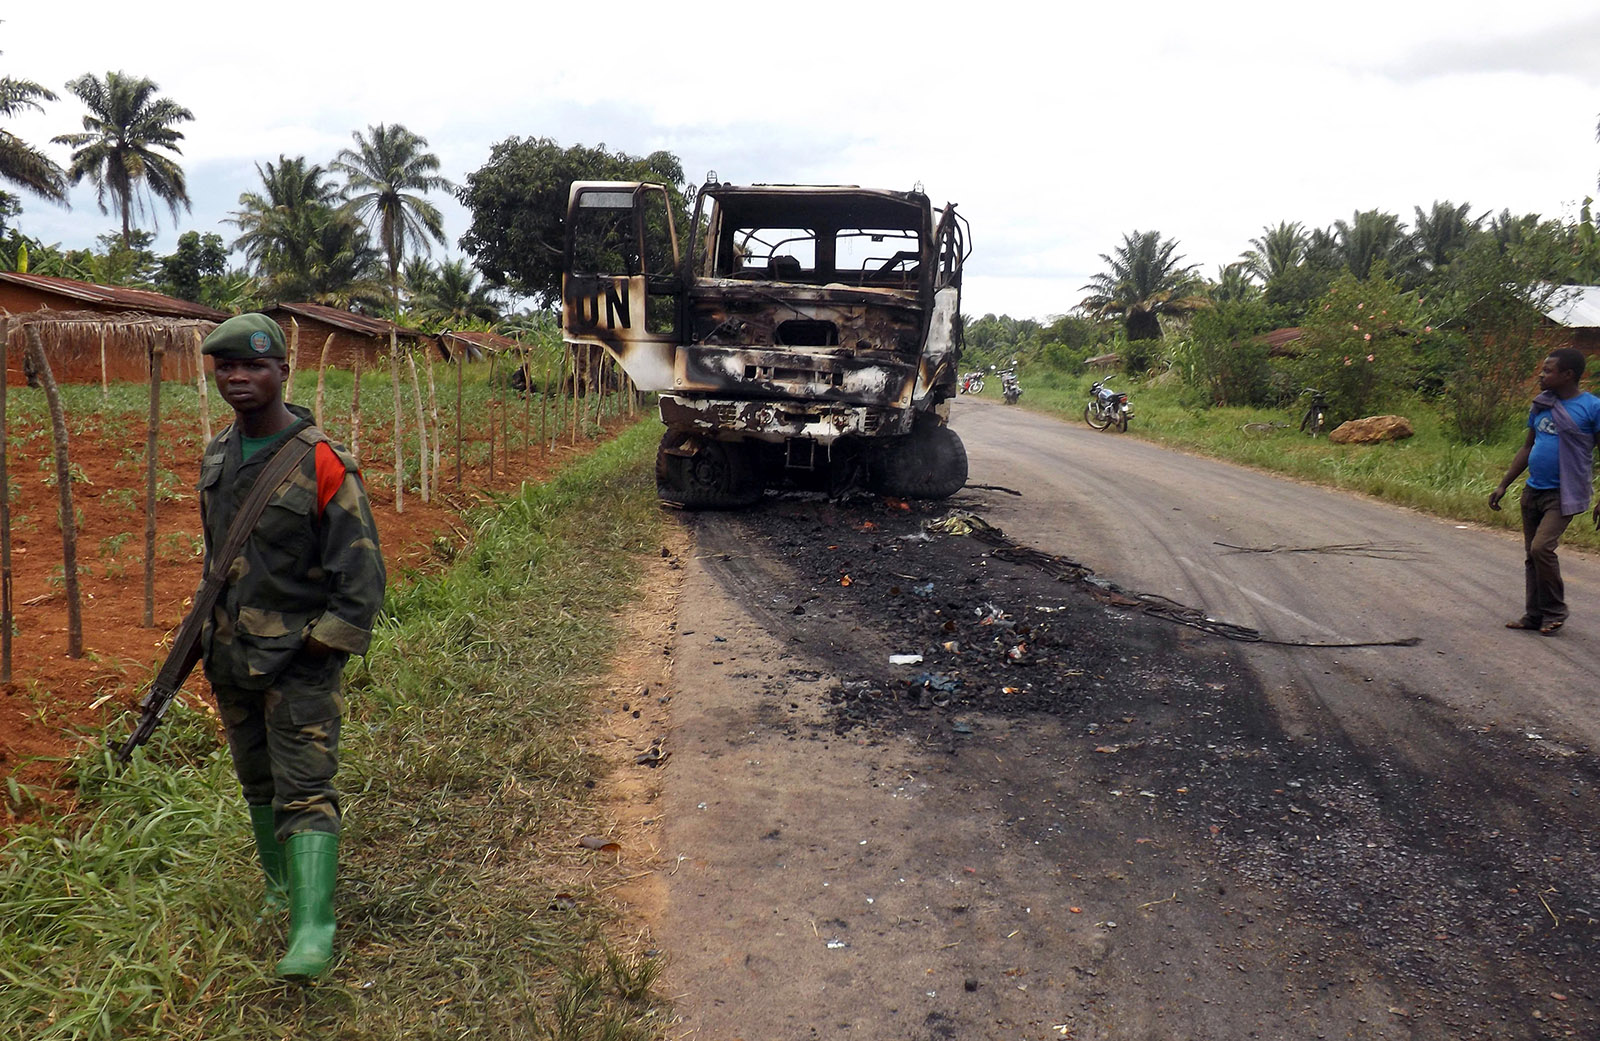 A United Nations vehicle burned out in fighting near Beni, eastern Congo, on May 5, 2015